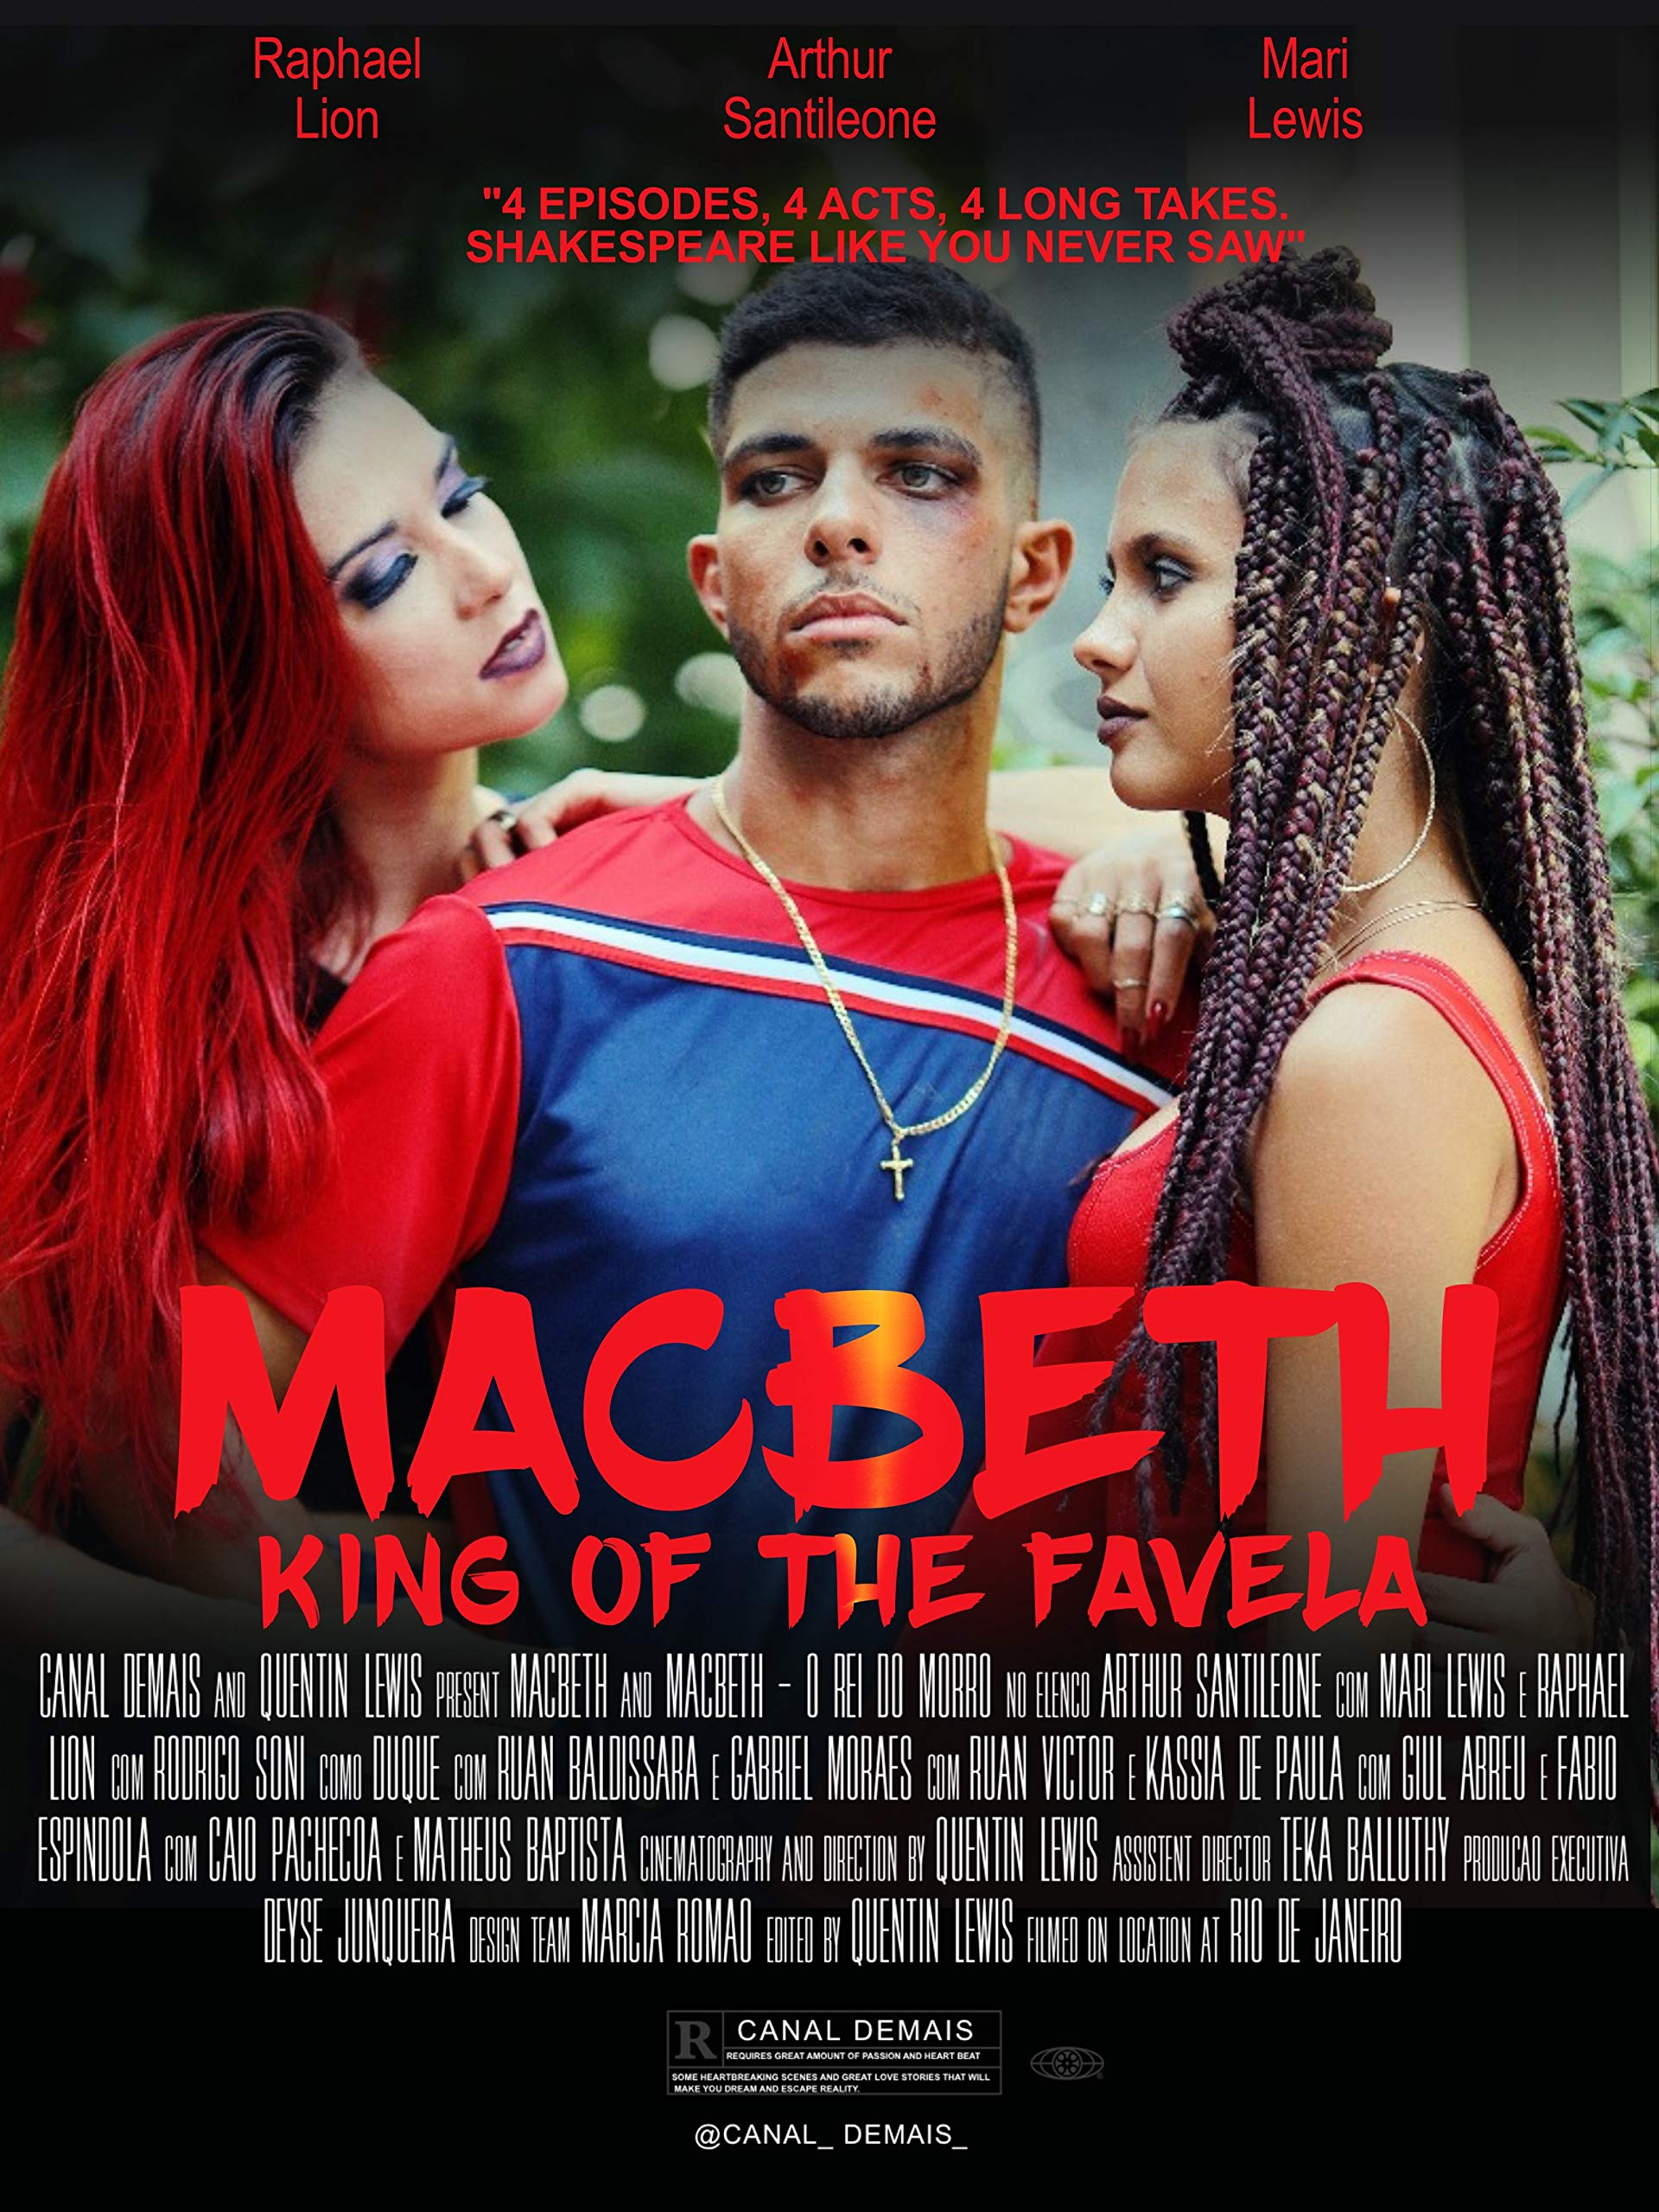 Macbeth - King of the Favela on Amazon Prime Video UK